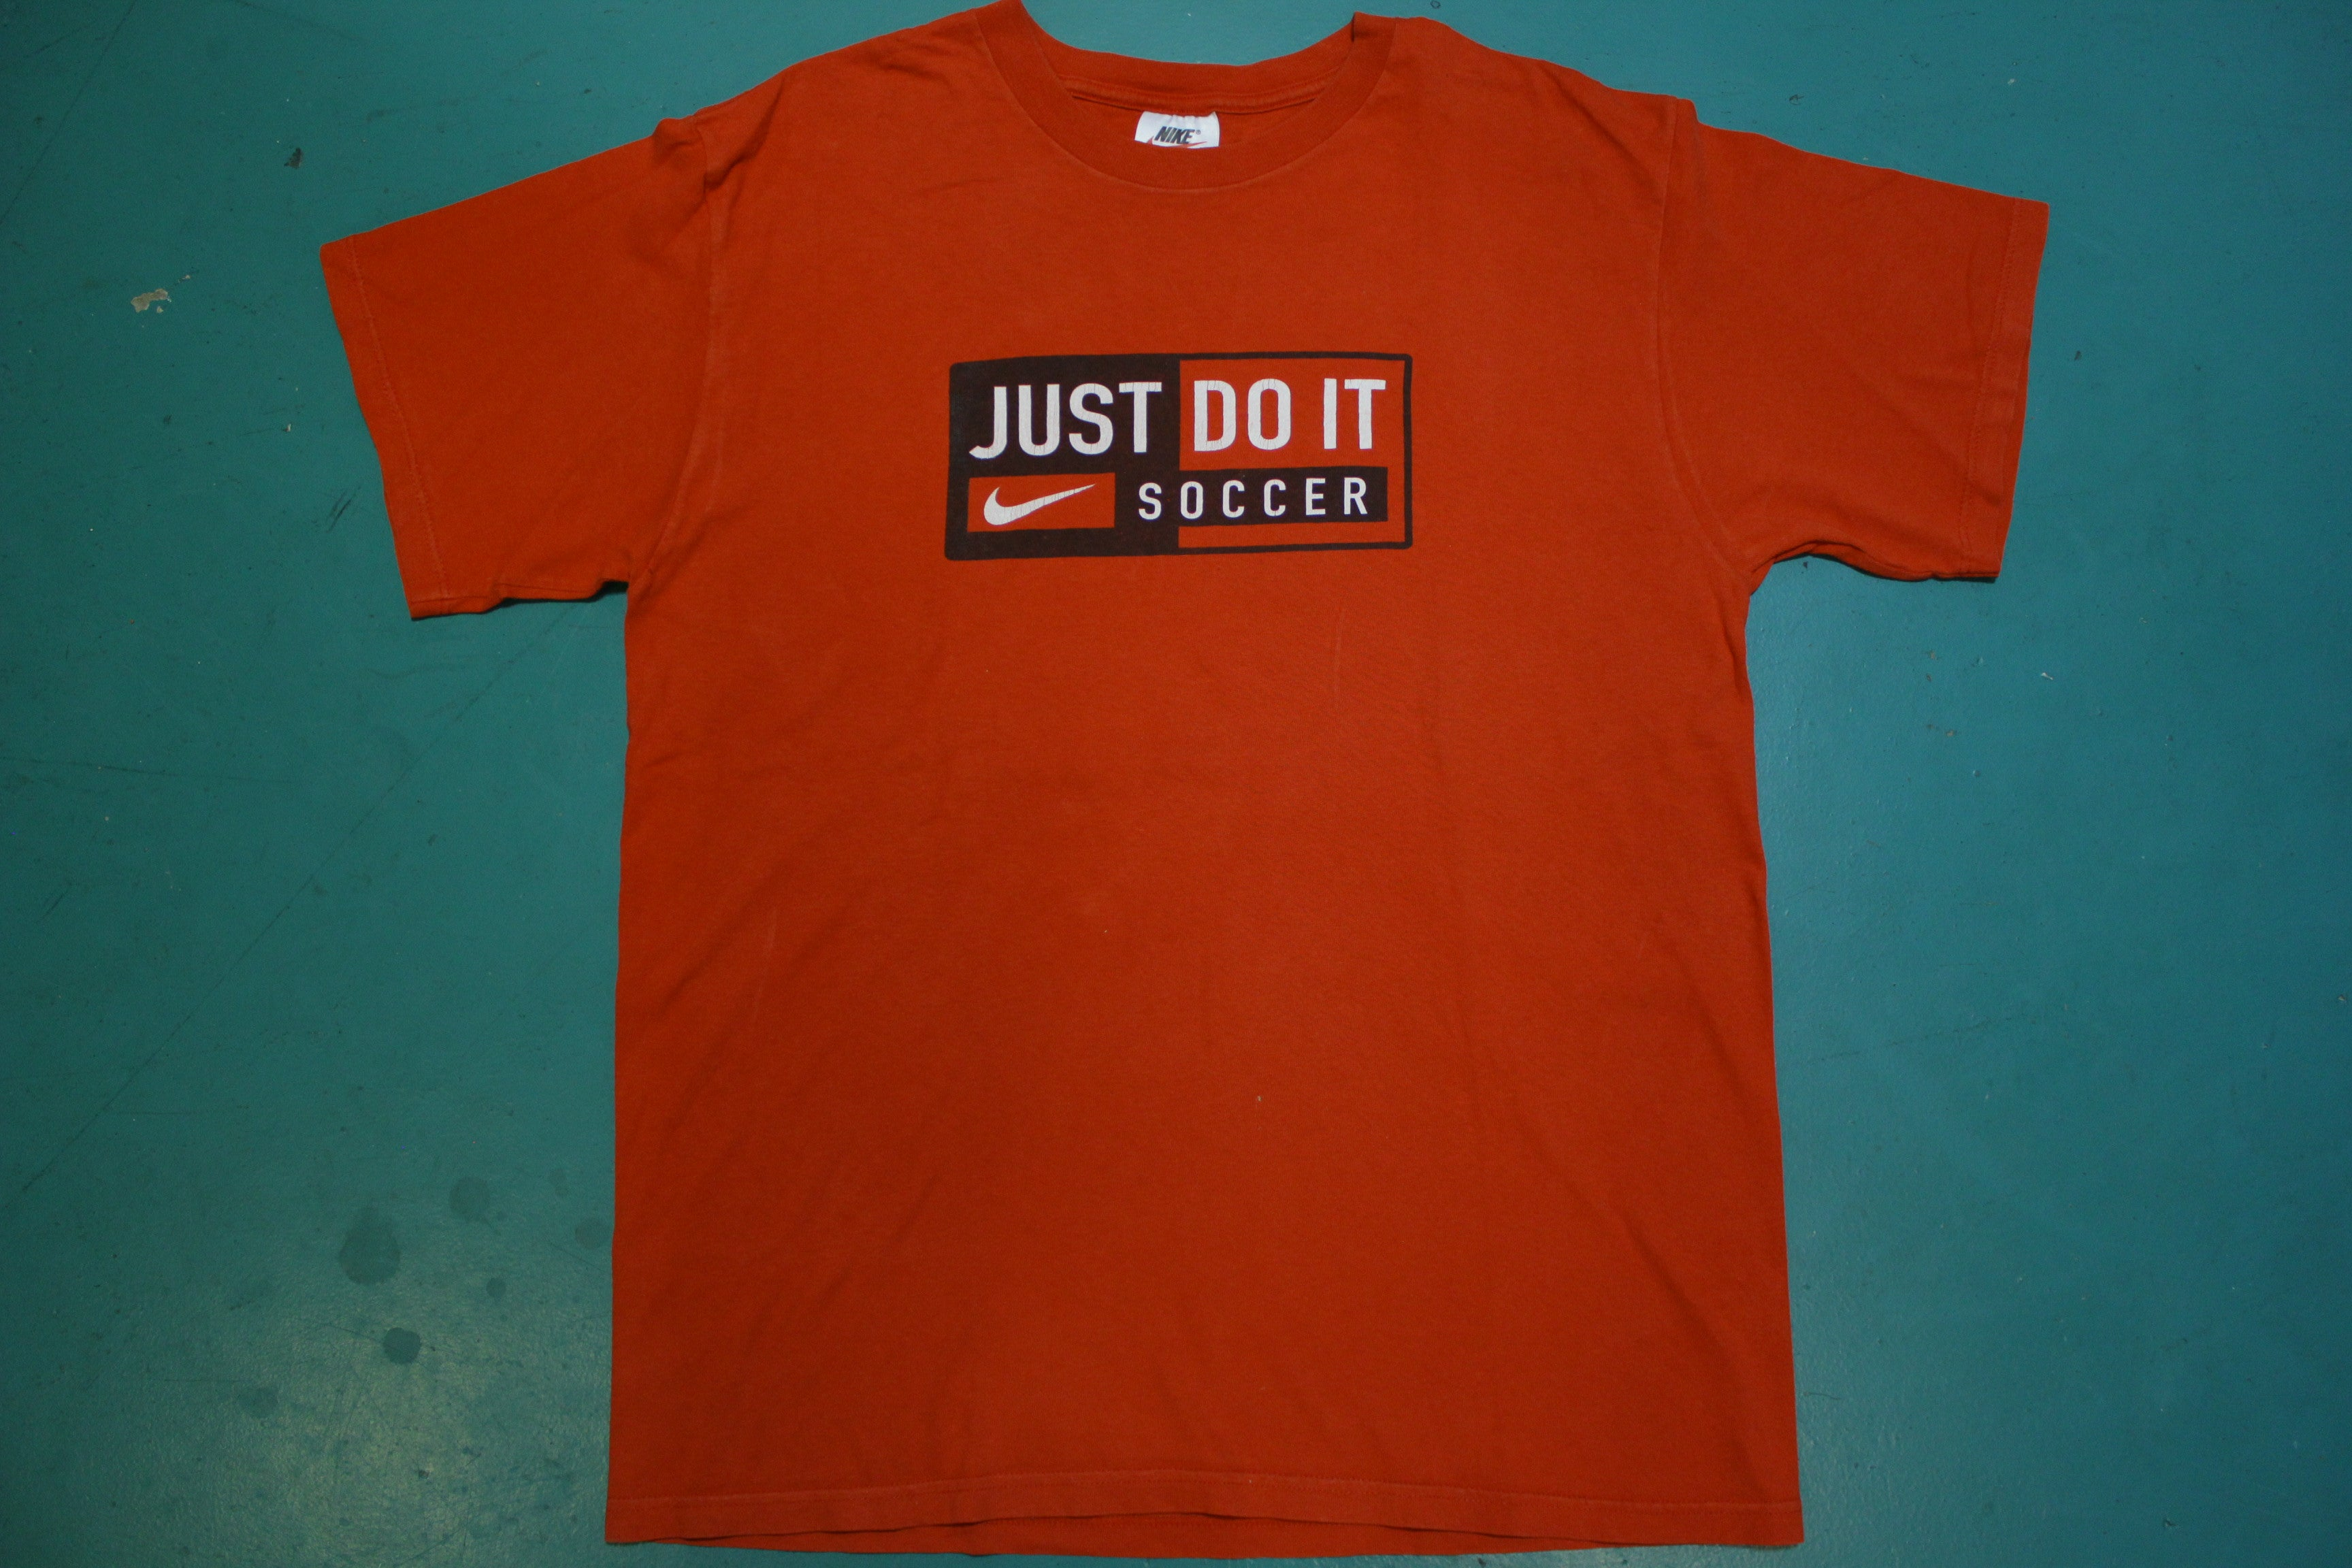 Nike Soccer Just Do It 90's Made in USA Vintage 1990s Red T-shirt